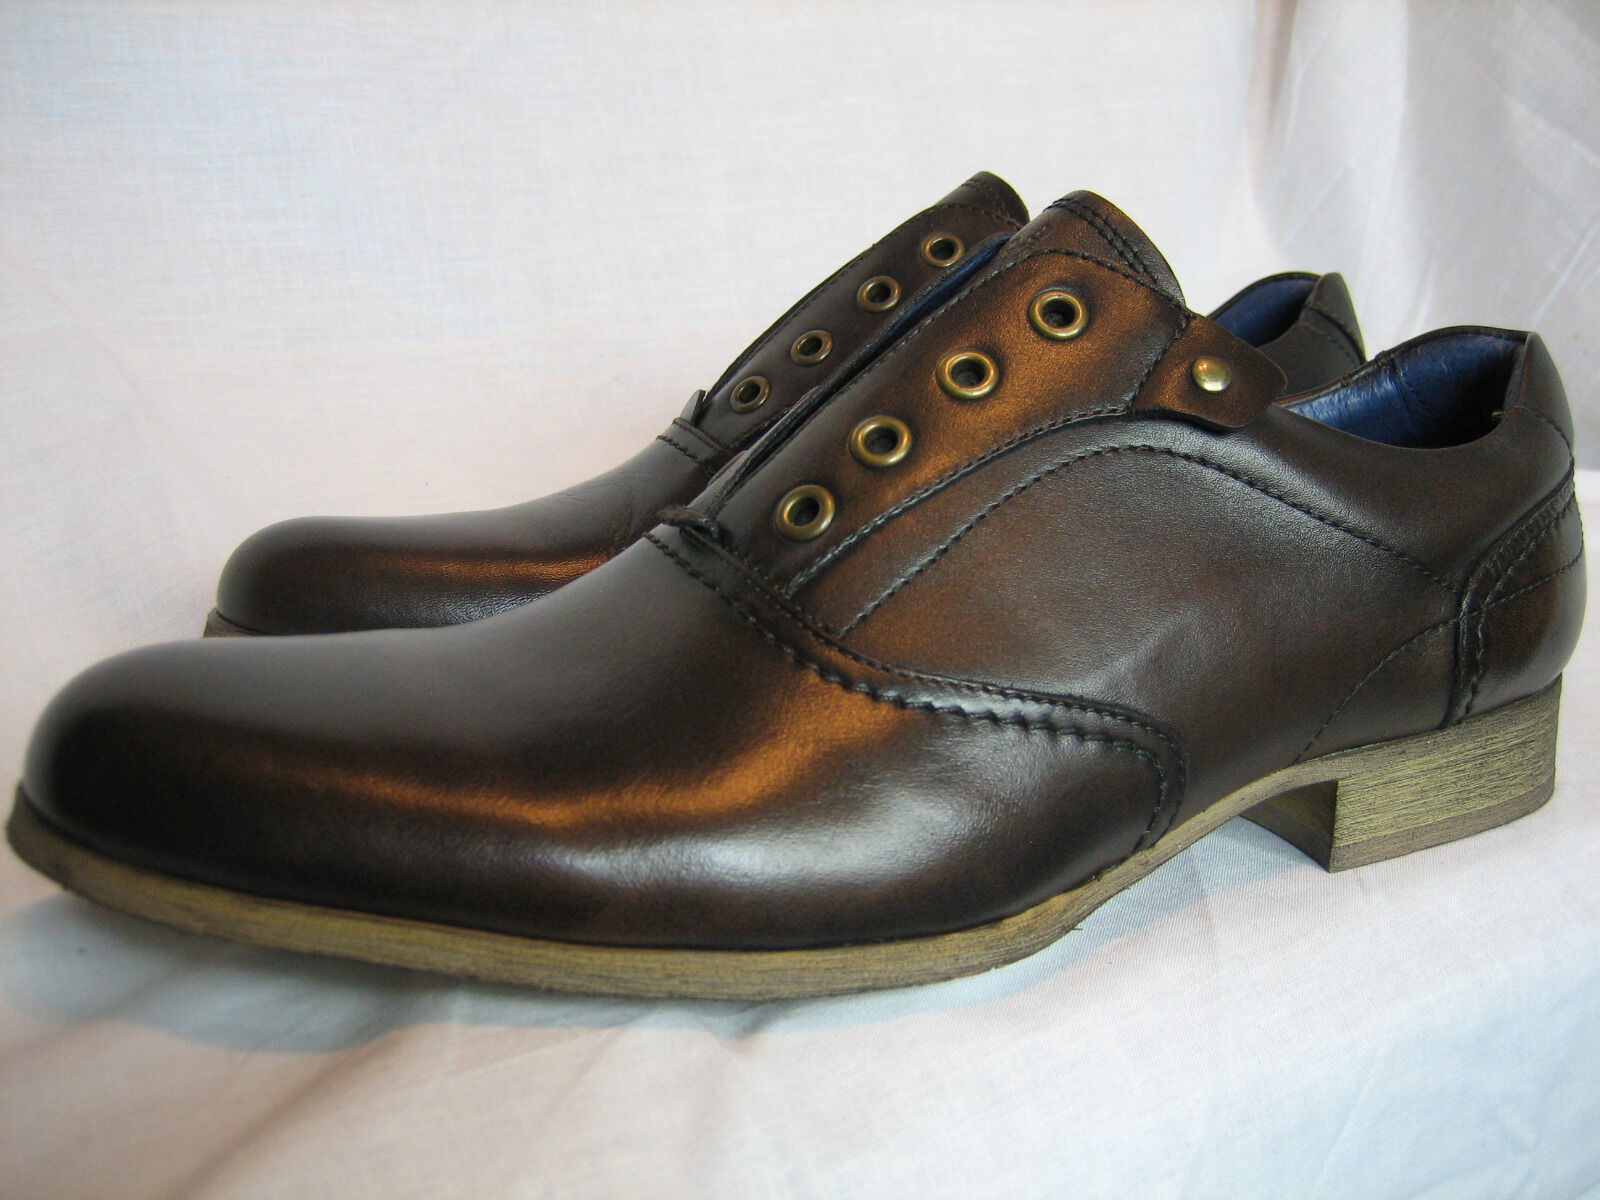 Men's Maruti Brown Laceless leather Oxford Loafer Slip-on shoes size 7 EU41